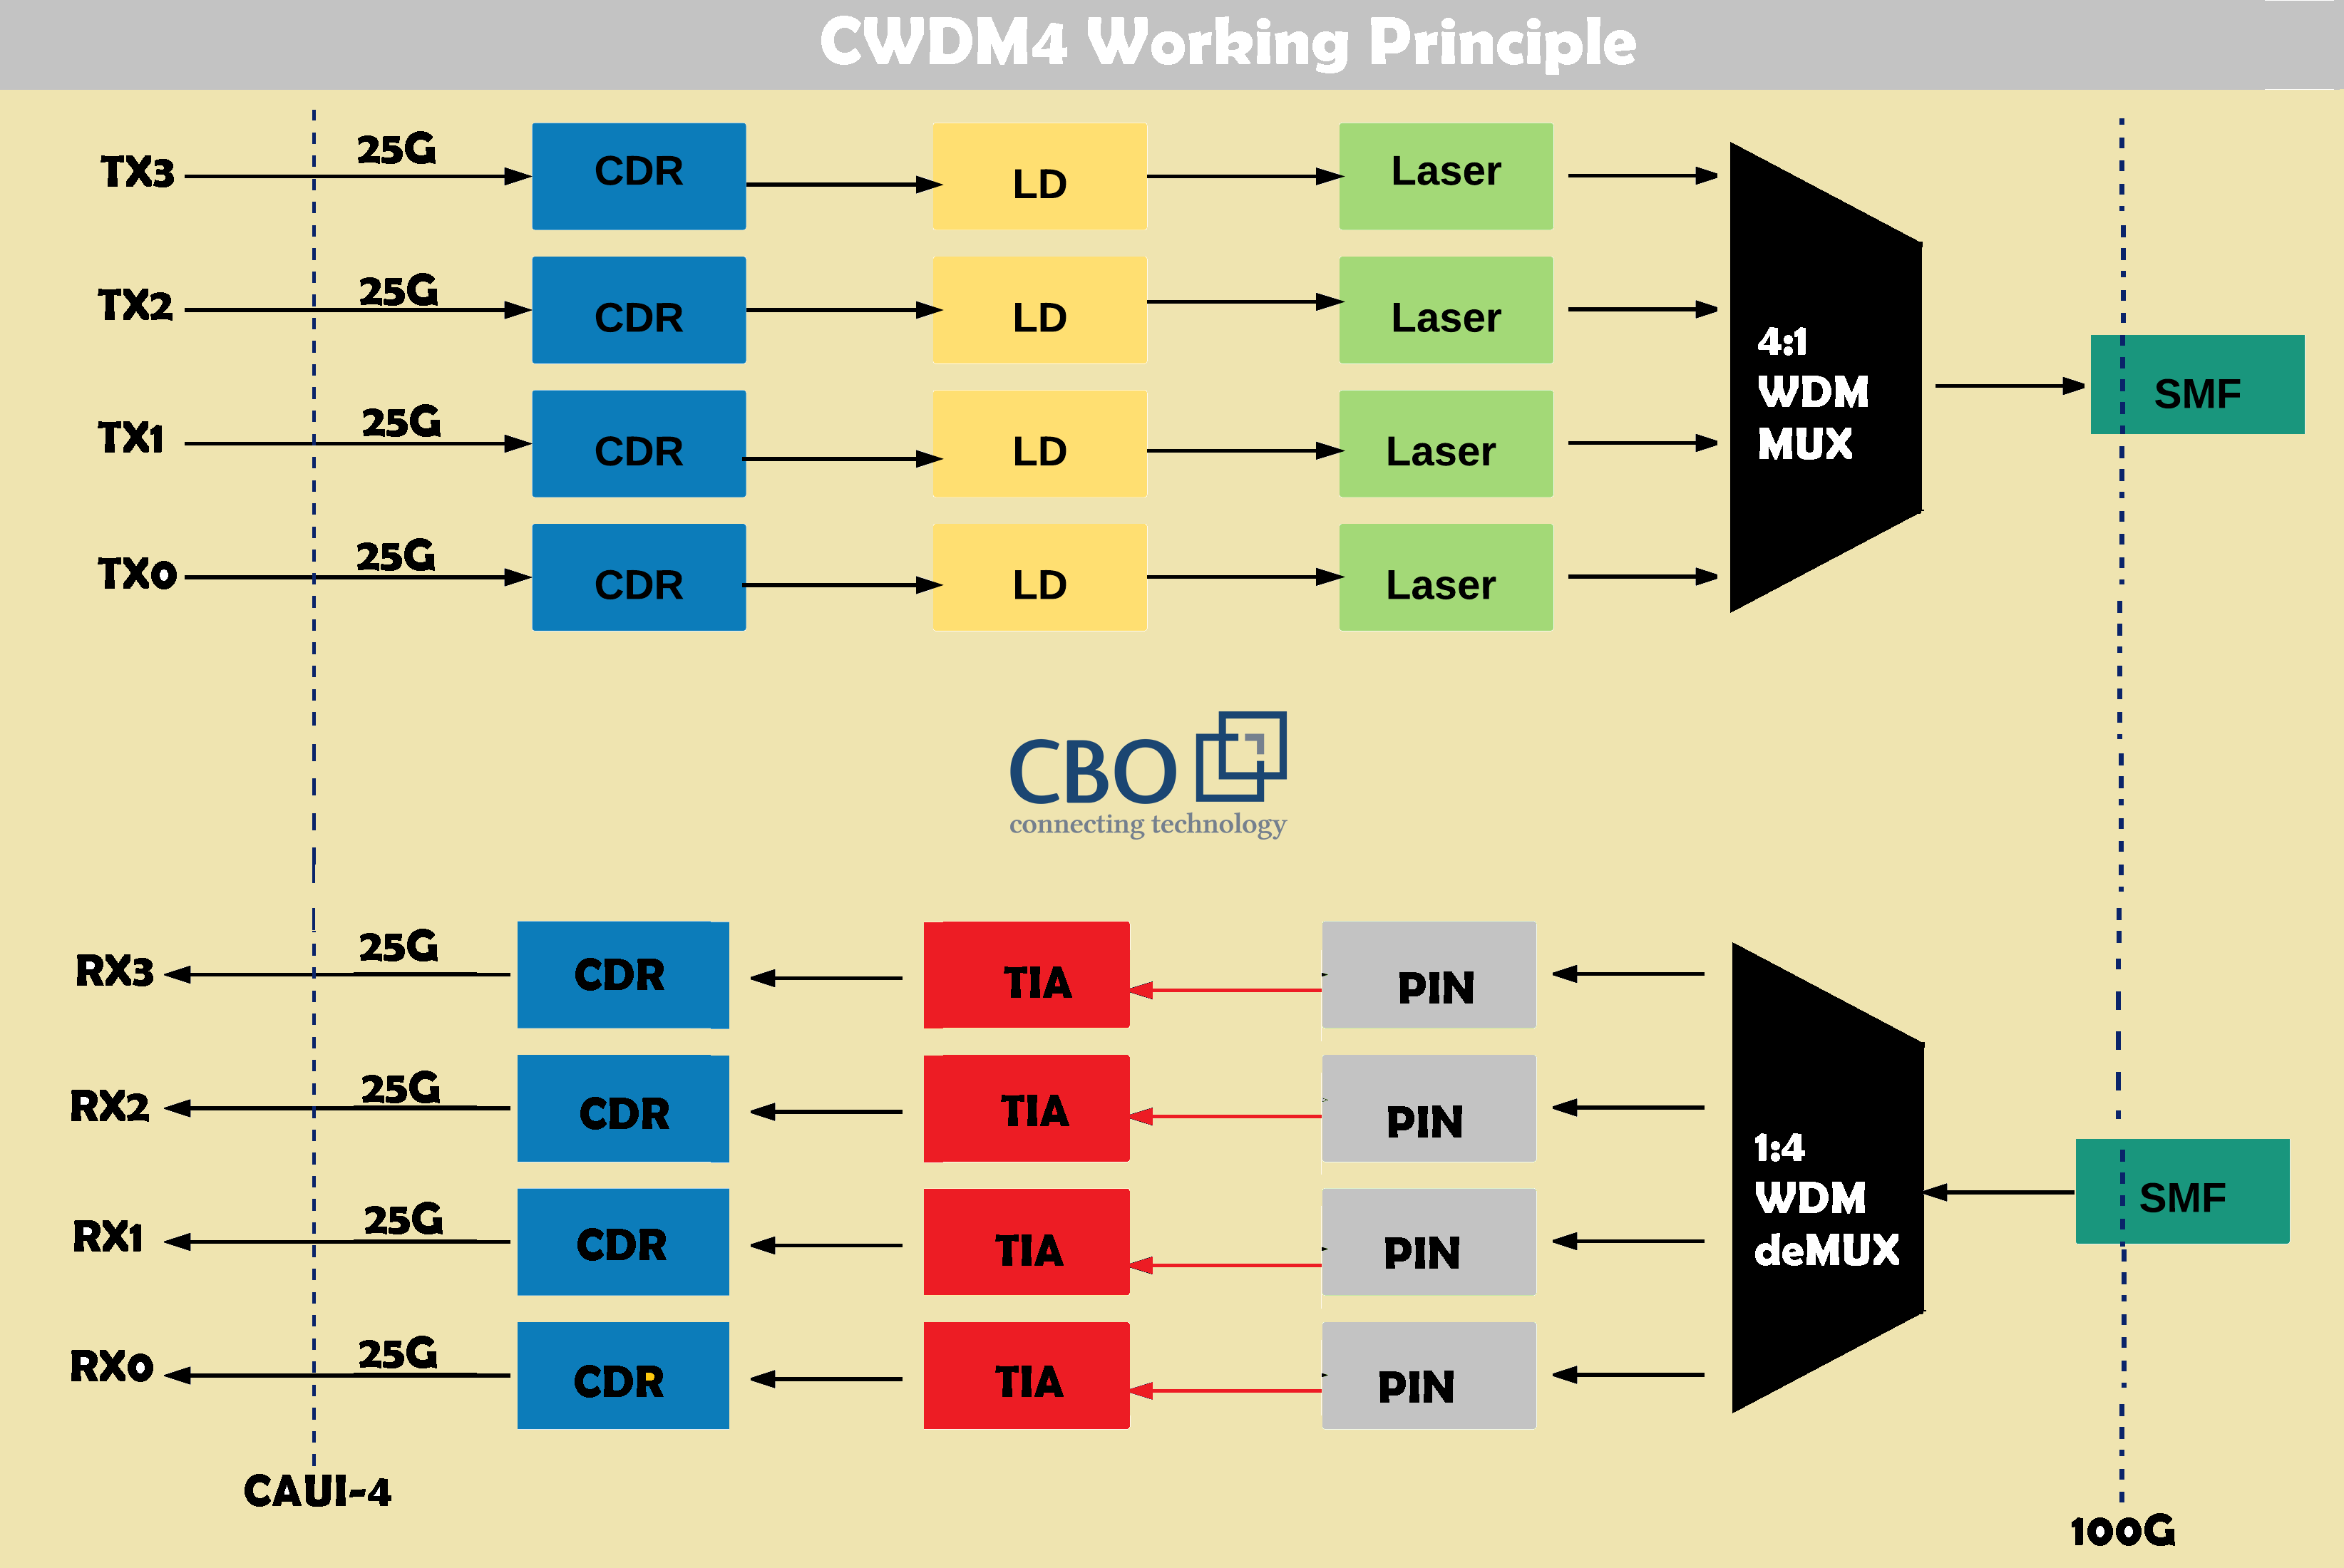 4_PSM4-CWDM4-Most-Promising-Solution-for-100G-Ethernet.png